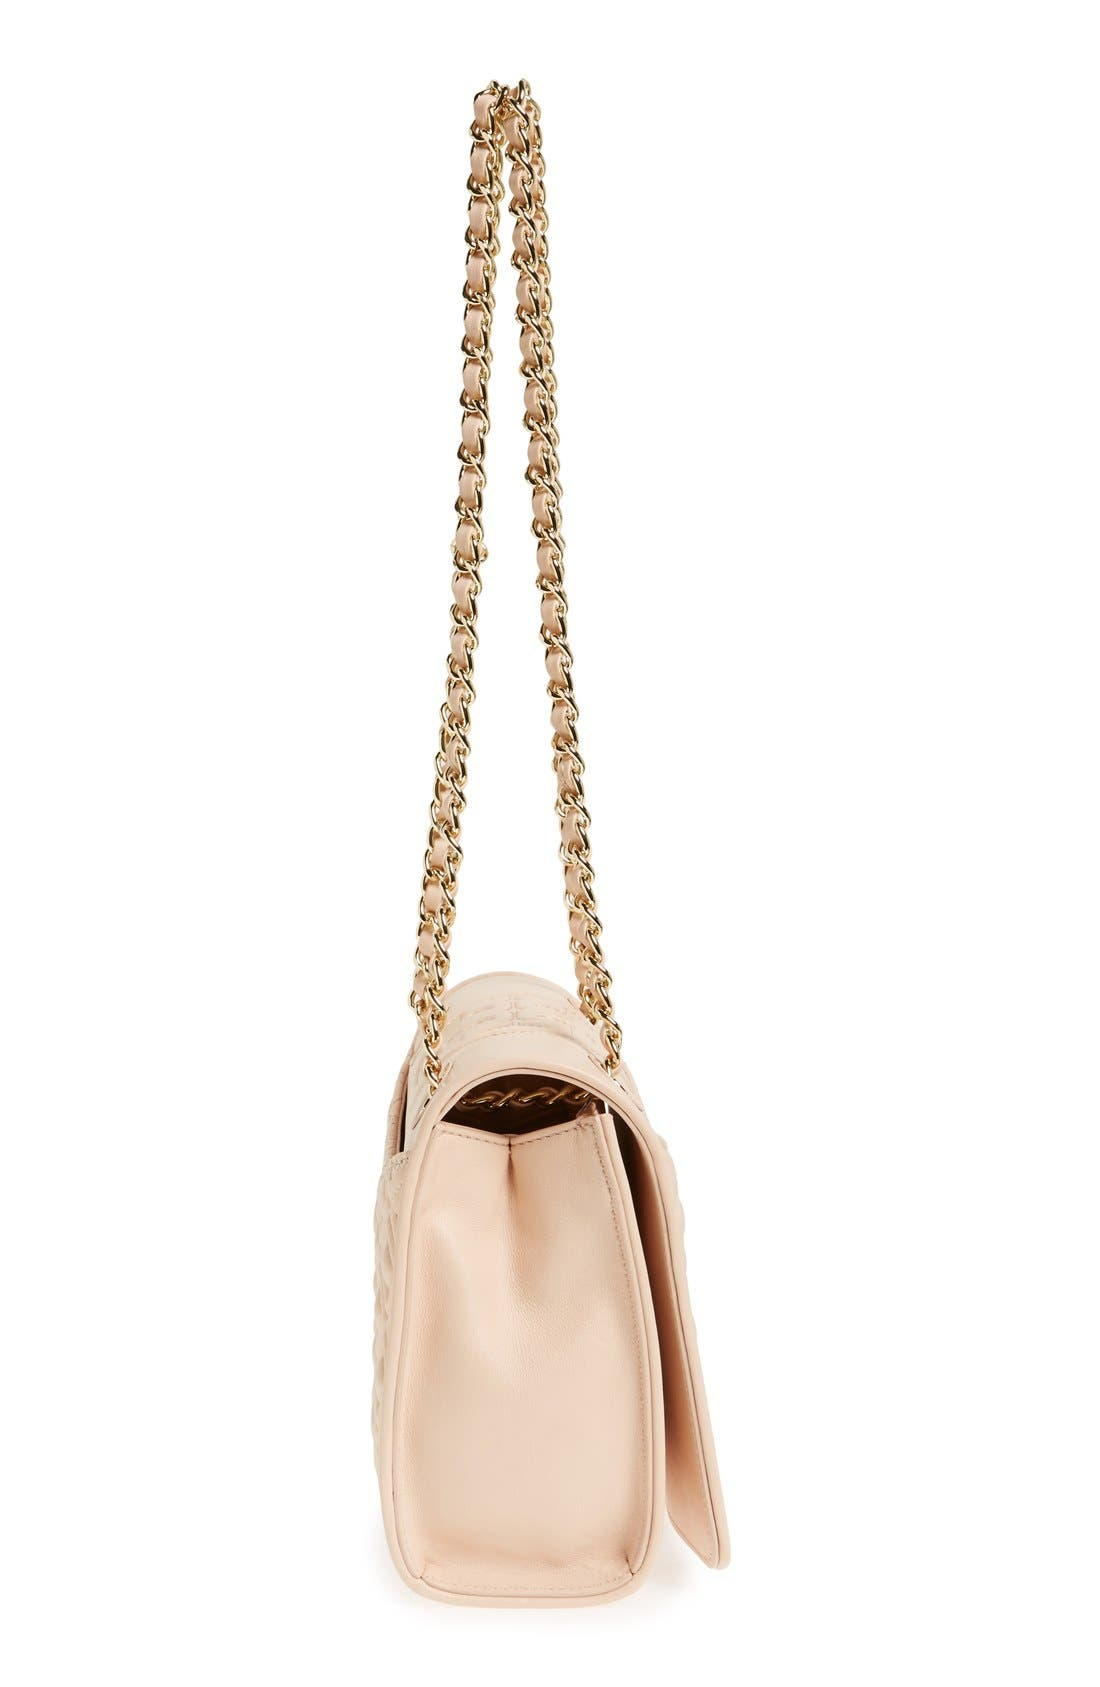 'Medium Fleming' Leather Shoulder Bag,                             Alternate thumbnail 7, color,                             Pale Apricot